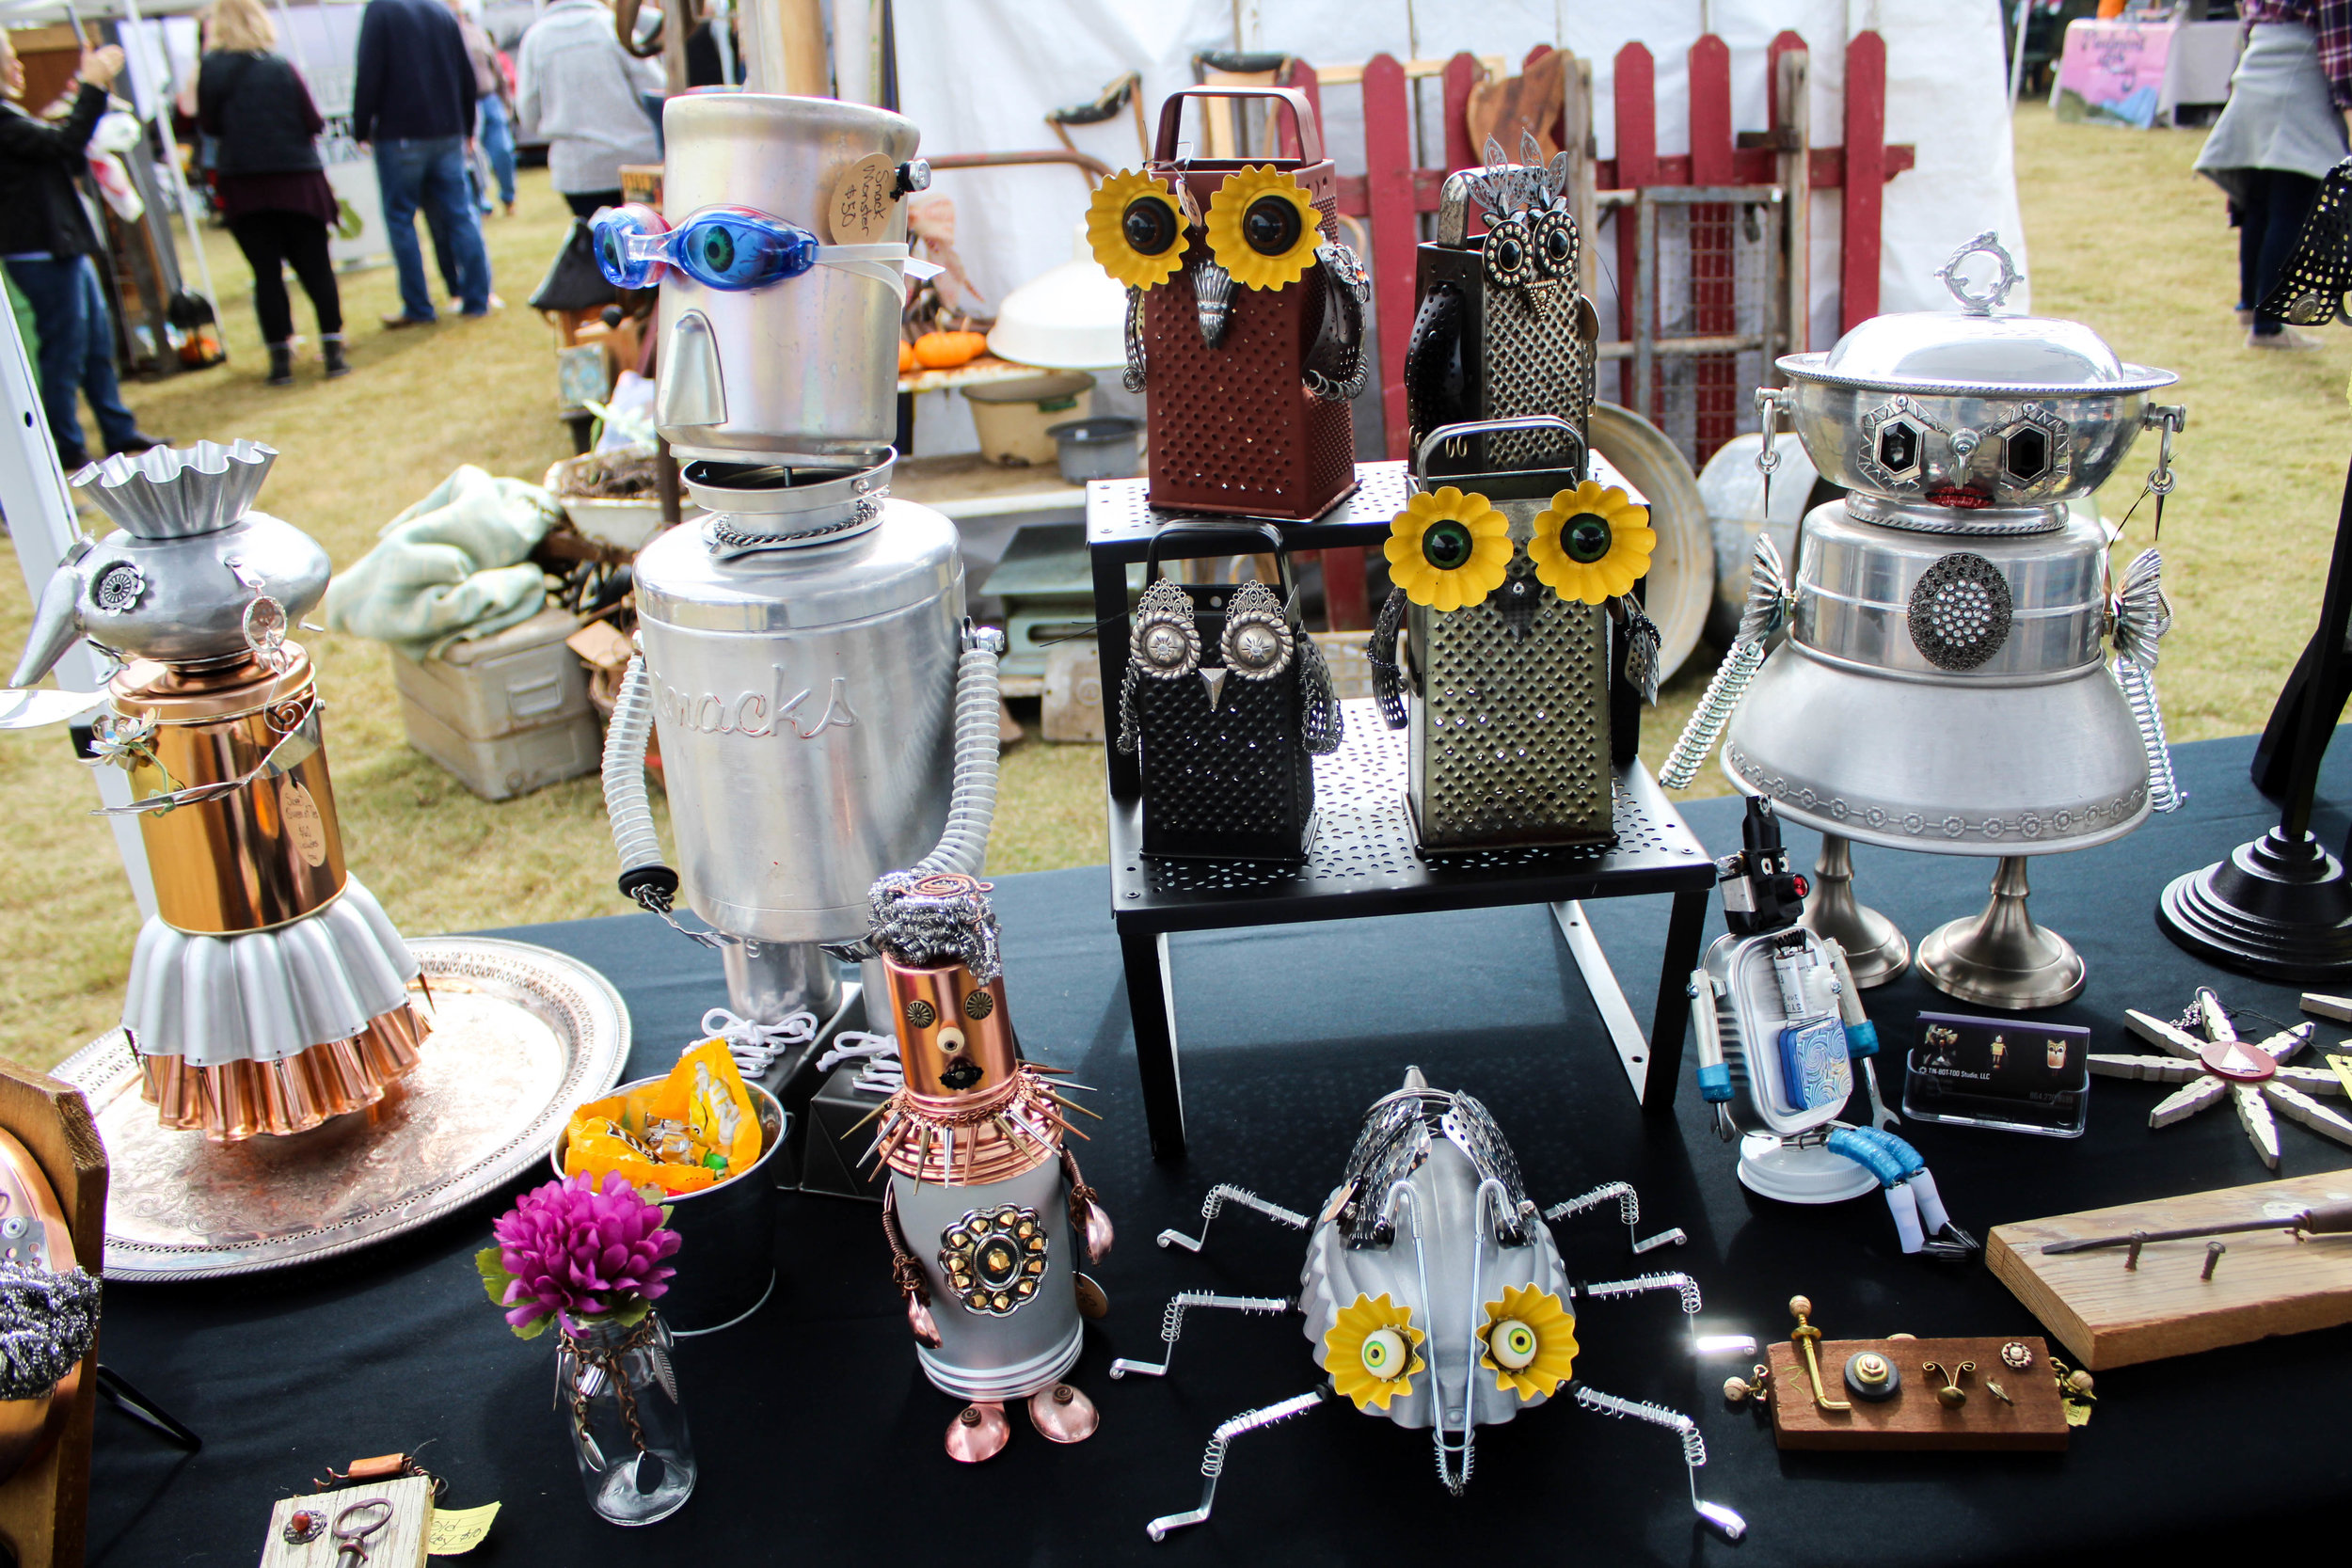 Helen Fields, owner and artist of TIN-BOT-TOO, brought many of her art pieces to sell at the market.